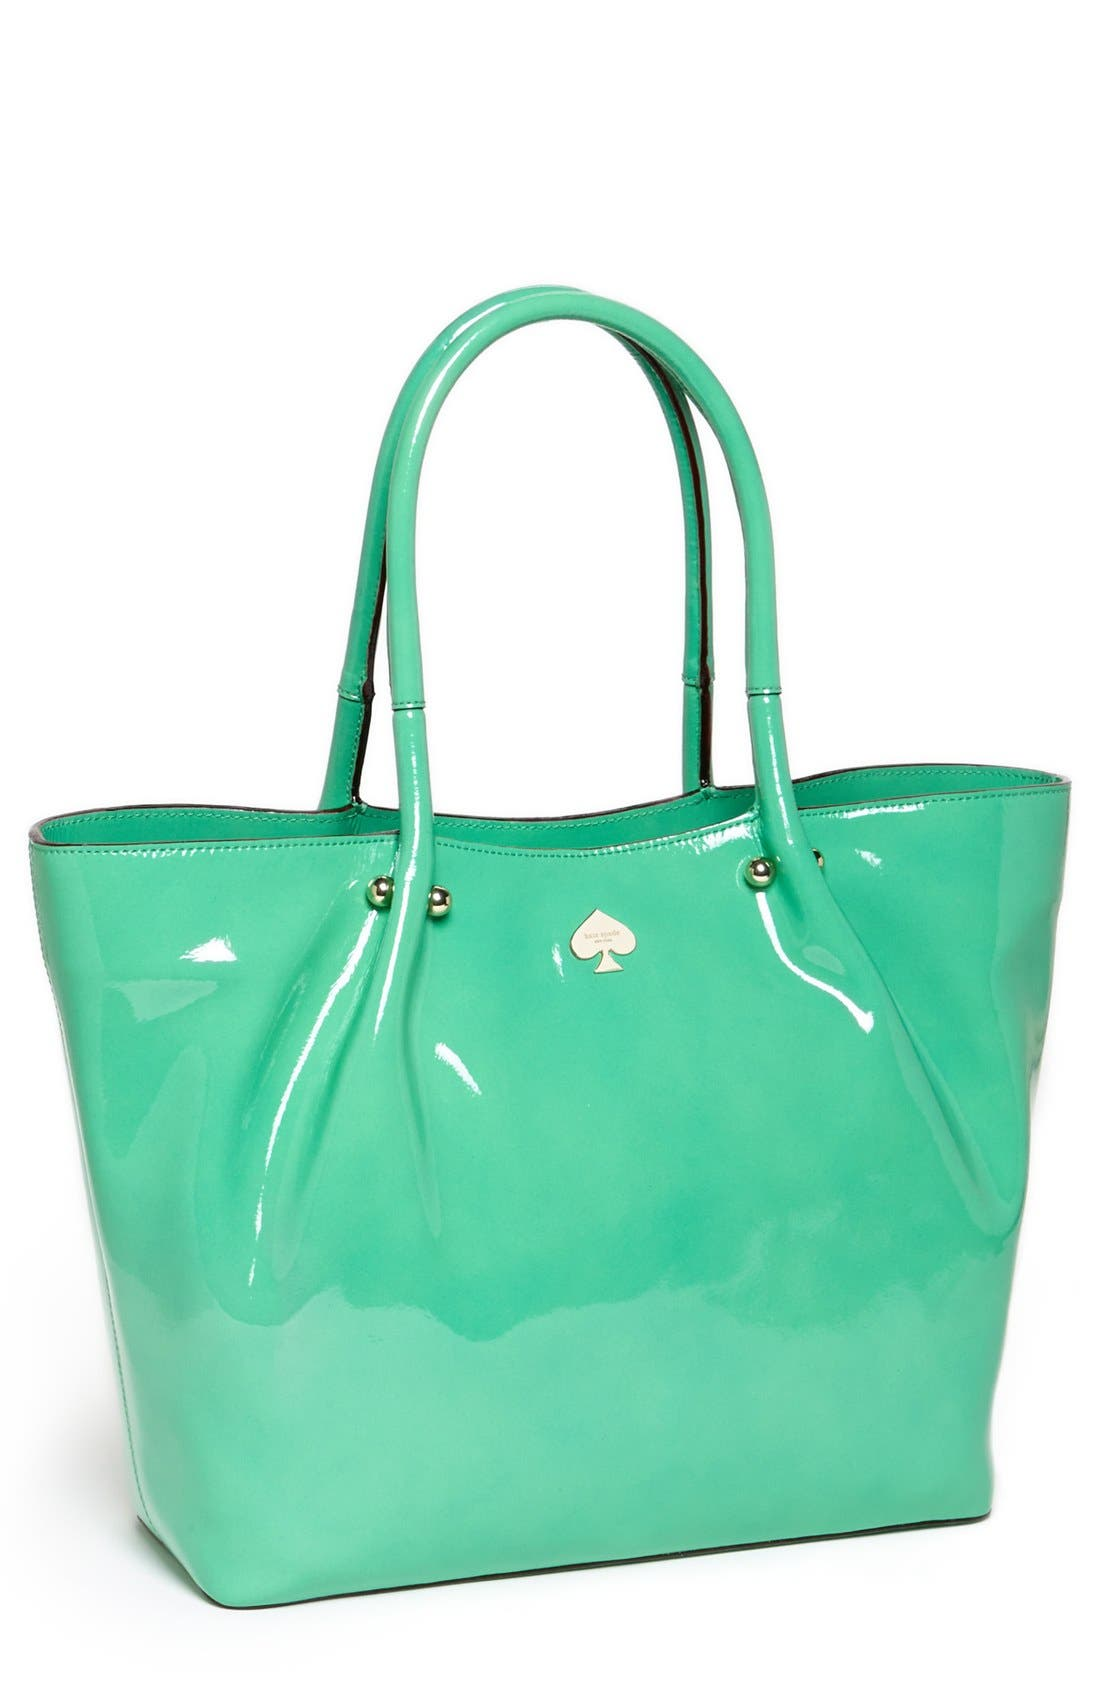 Main Image - kate spade new york 'first prize - tolen' leather tote